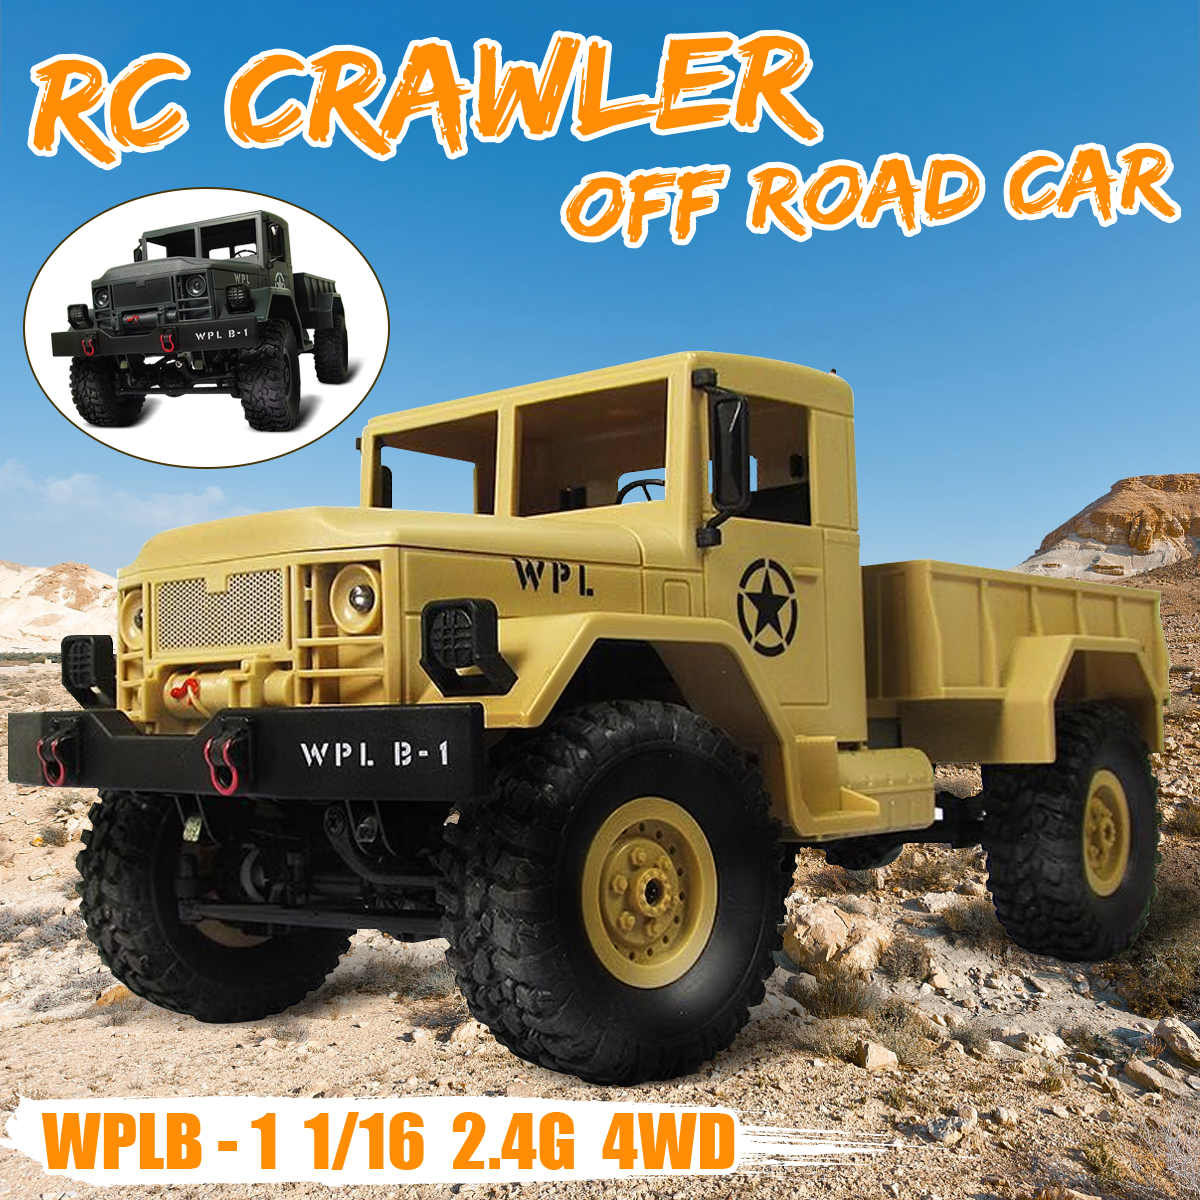 RC Crawler Off Road Car WPL B-1 DIY Car Kit 1/16 2.4G 4WD Without Electronic Parts ATR ABS Metal Assemble For Boy Children high quality feiyue fy 03 eagle rc remote control car kit for diy handmade upgrade parts without electronic parts